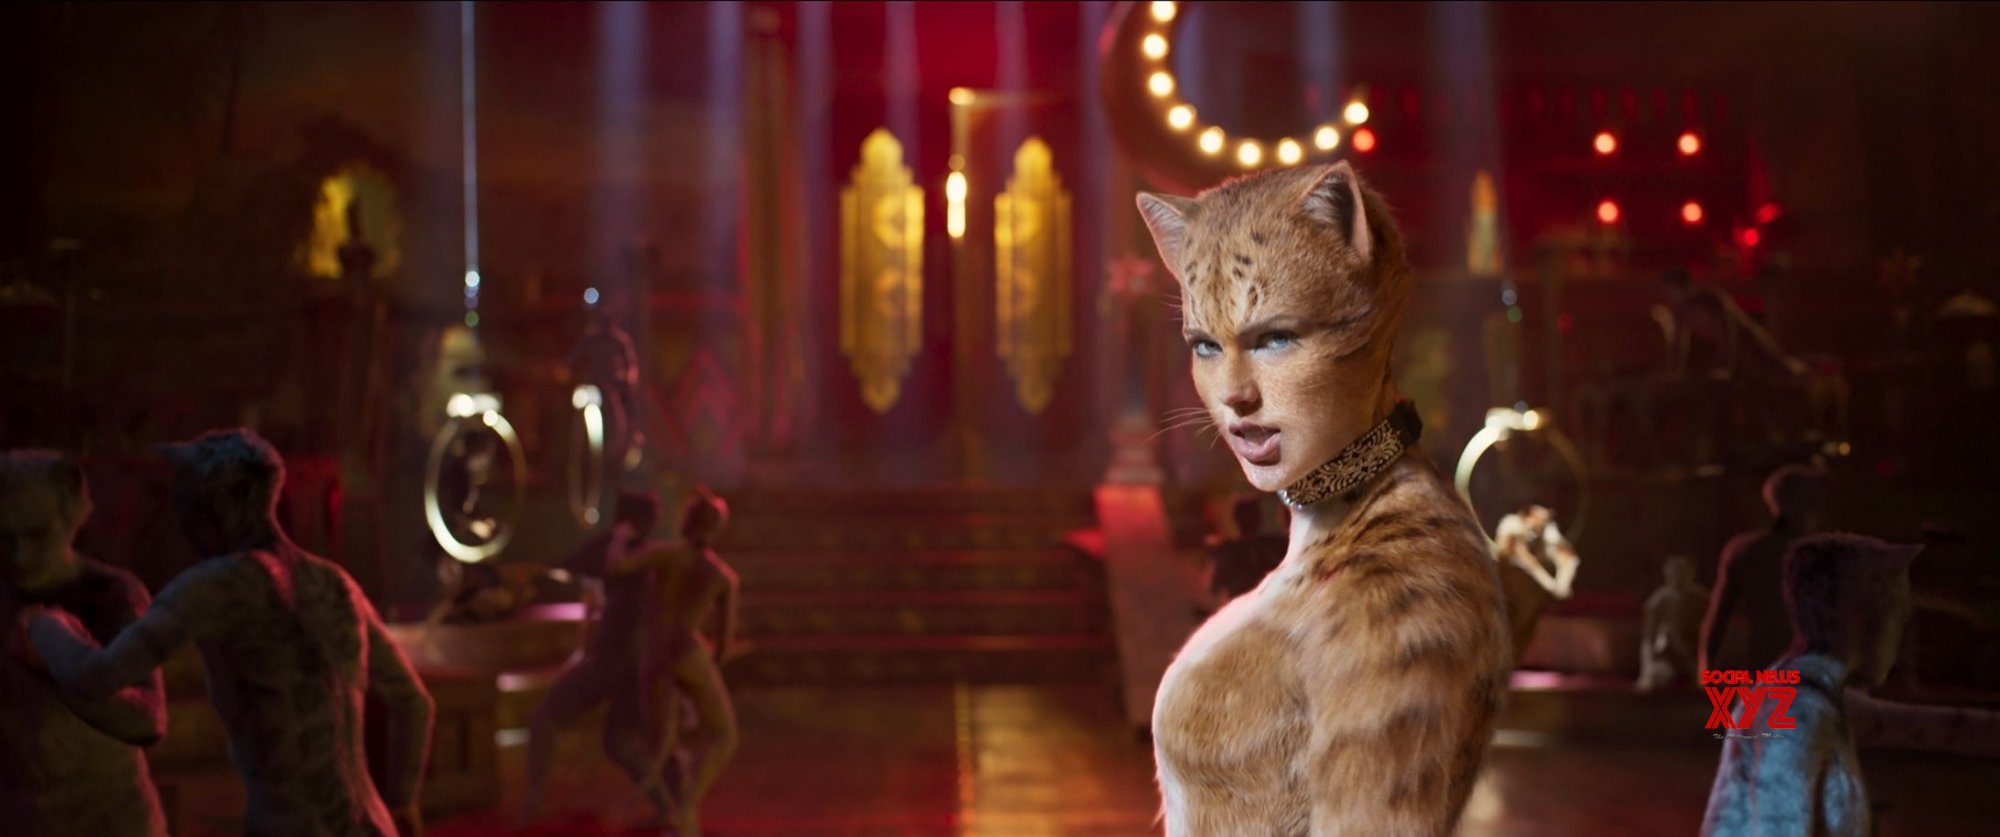 Taylor Swift's 'Cats' gets India release date